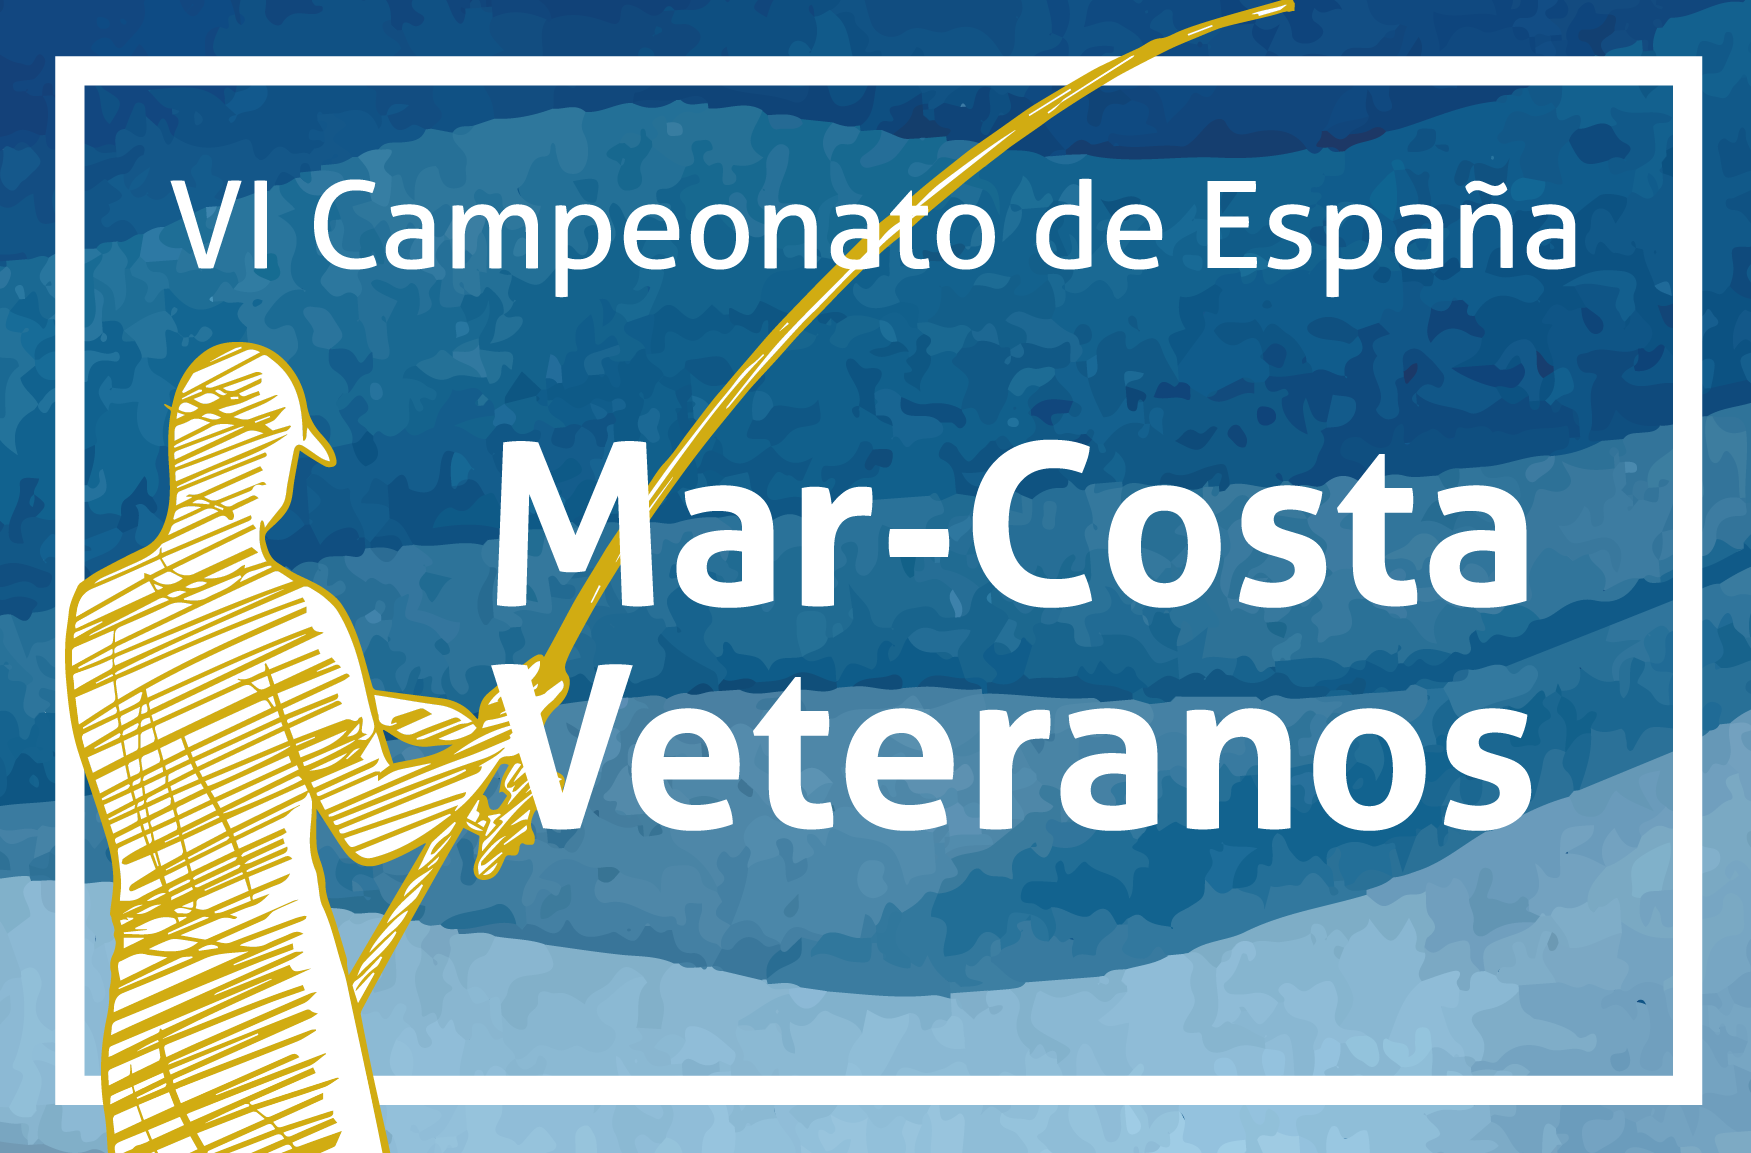 Mar Costa Veteranos